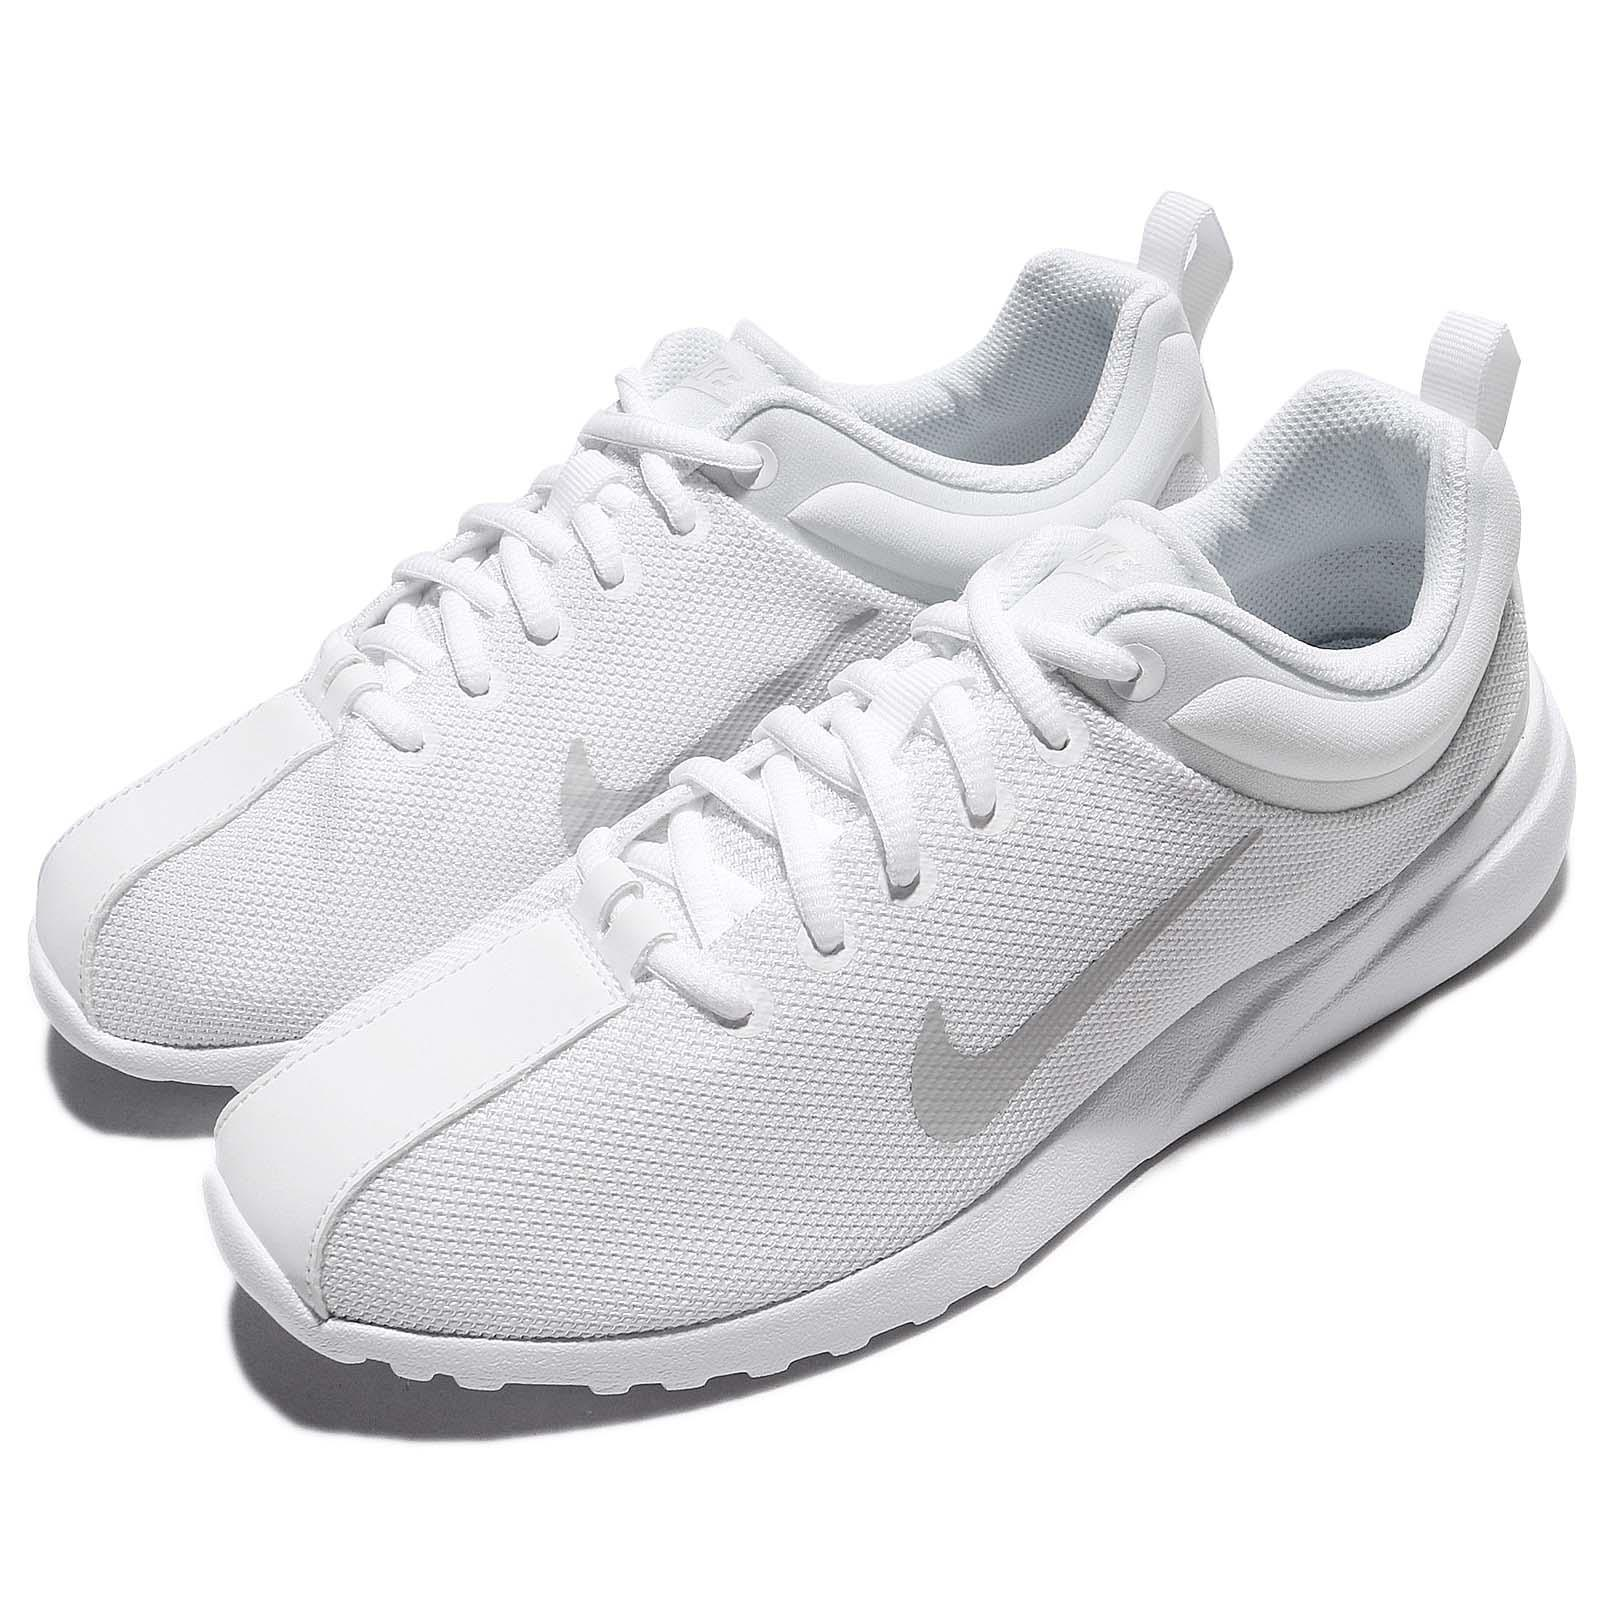 wmns nike superflyte white pure platinum women running shoes sneakers 916784 100 ebay. Black Bedroom Furniture Sets. Home Design Ideas